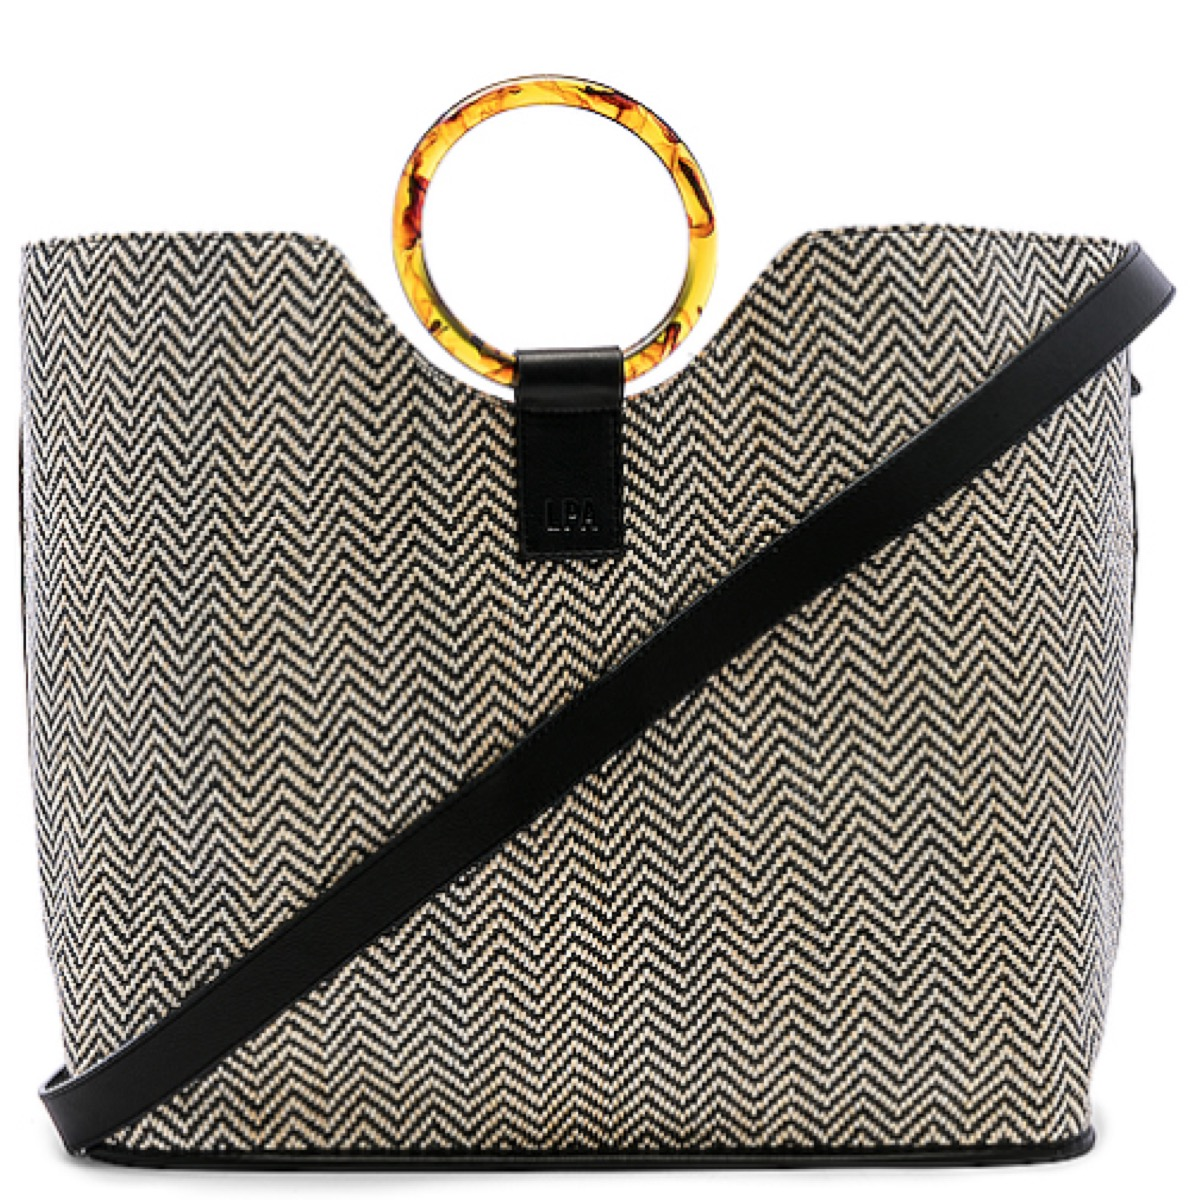 bangle-handle houndstooth tote, luxury beach bags